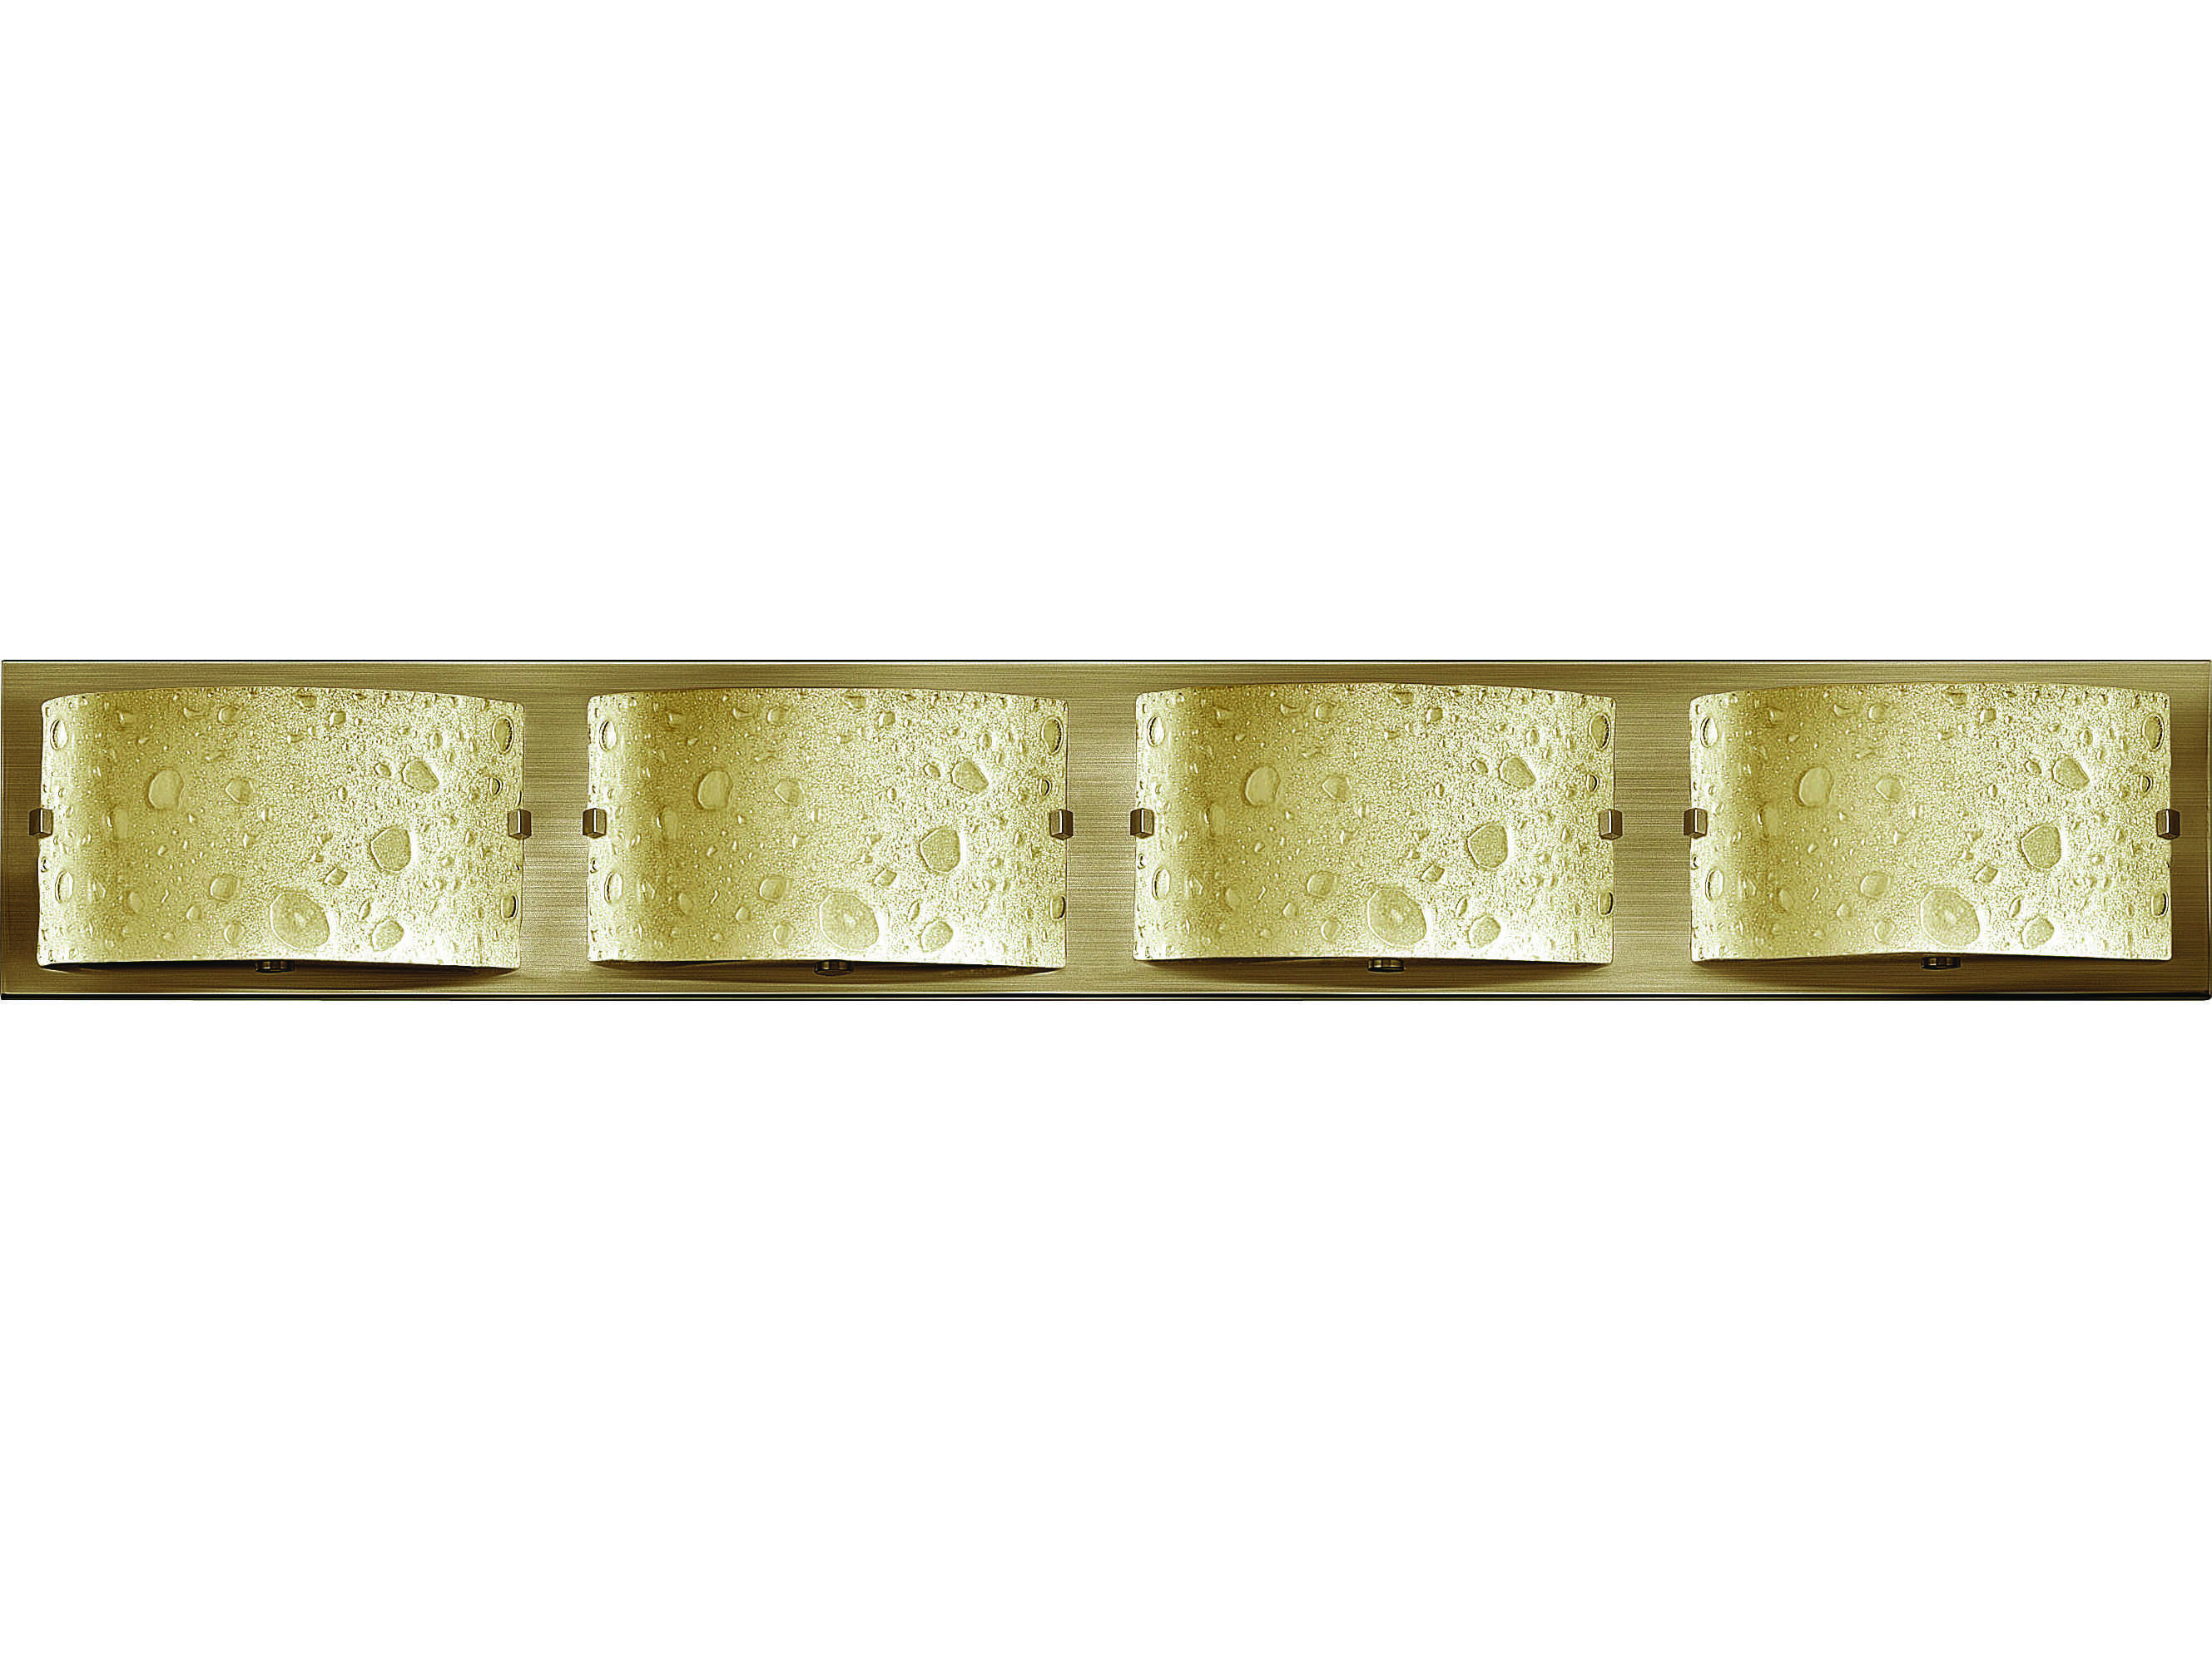 Hinkley lighting daphne brushed bronze four light led vanity light hy5924brled for Brushed bronze bathroom lighting